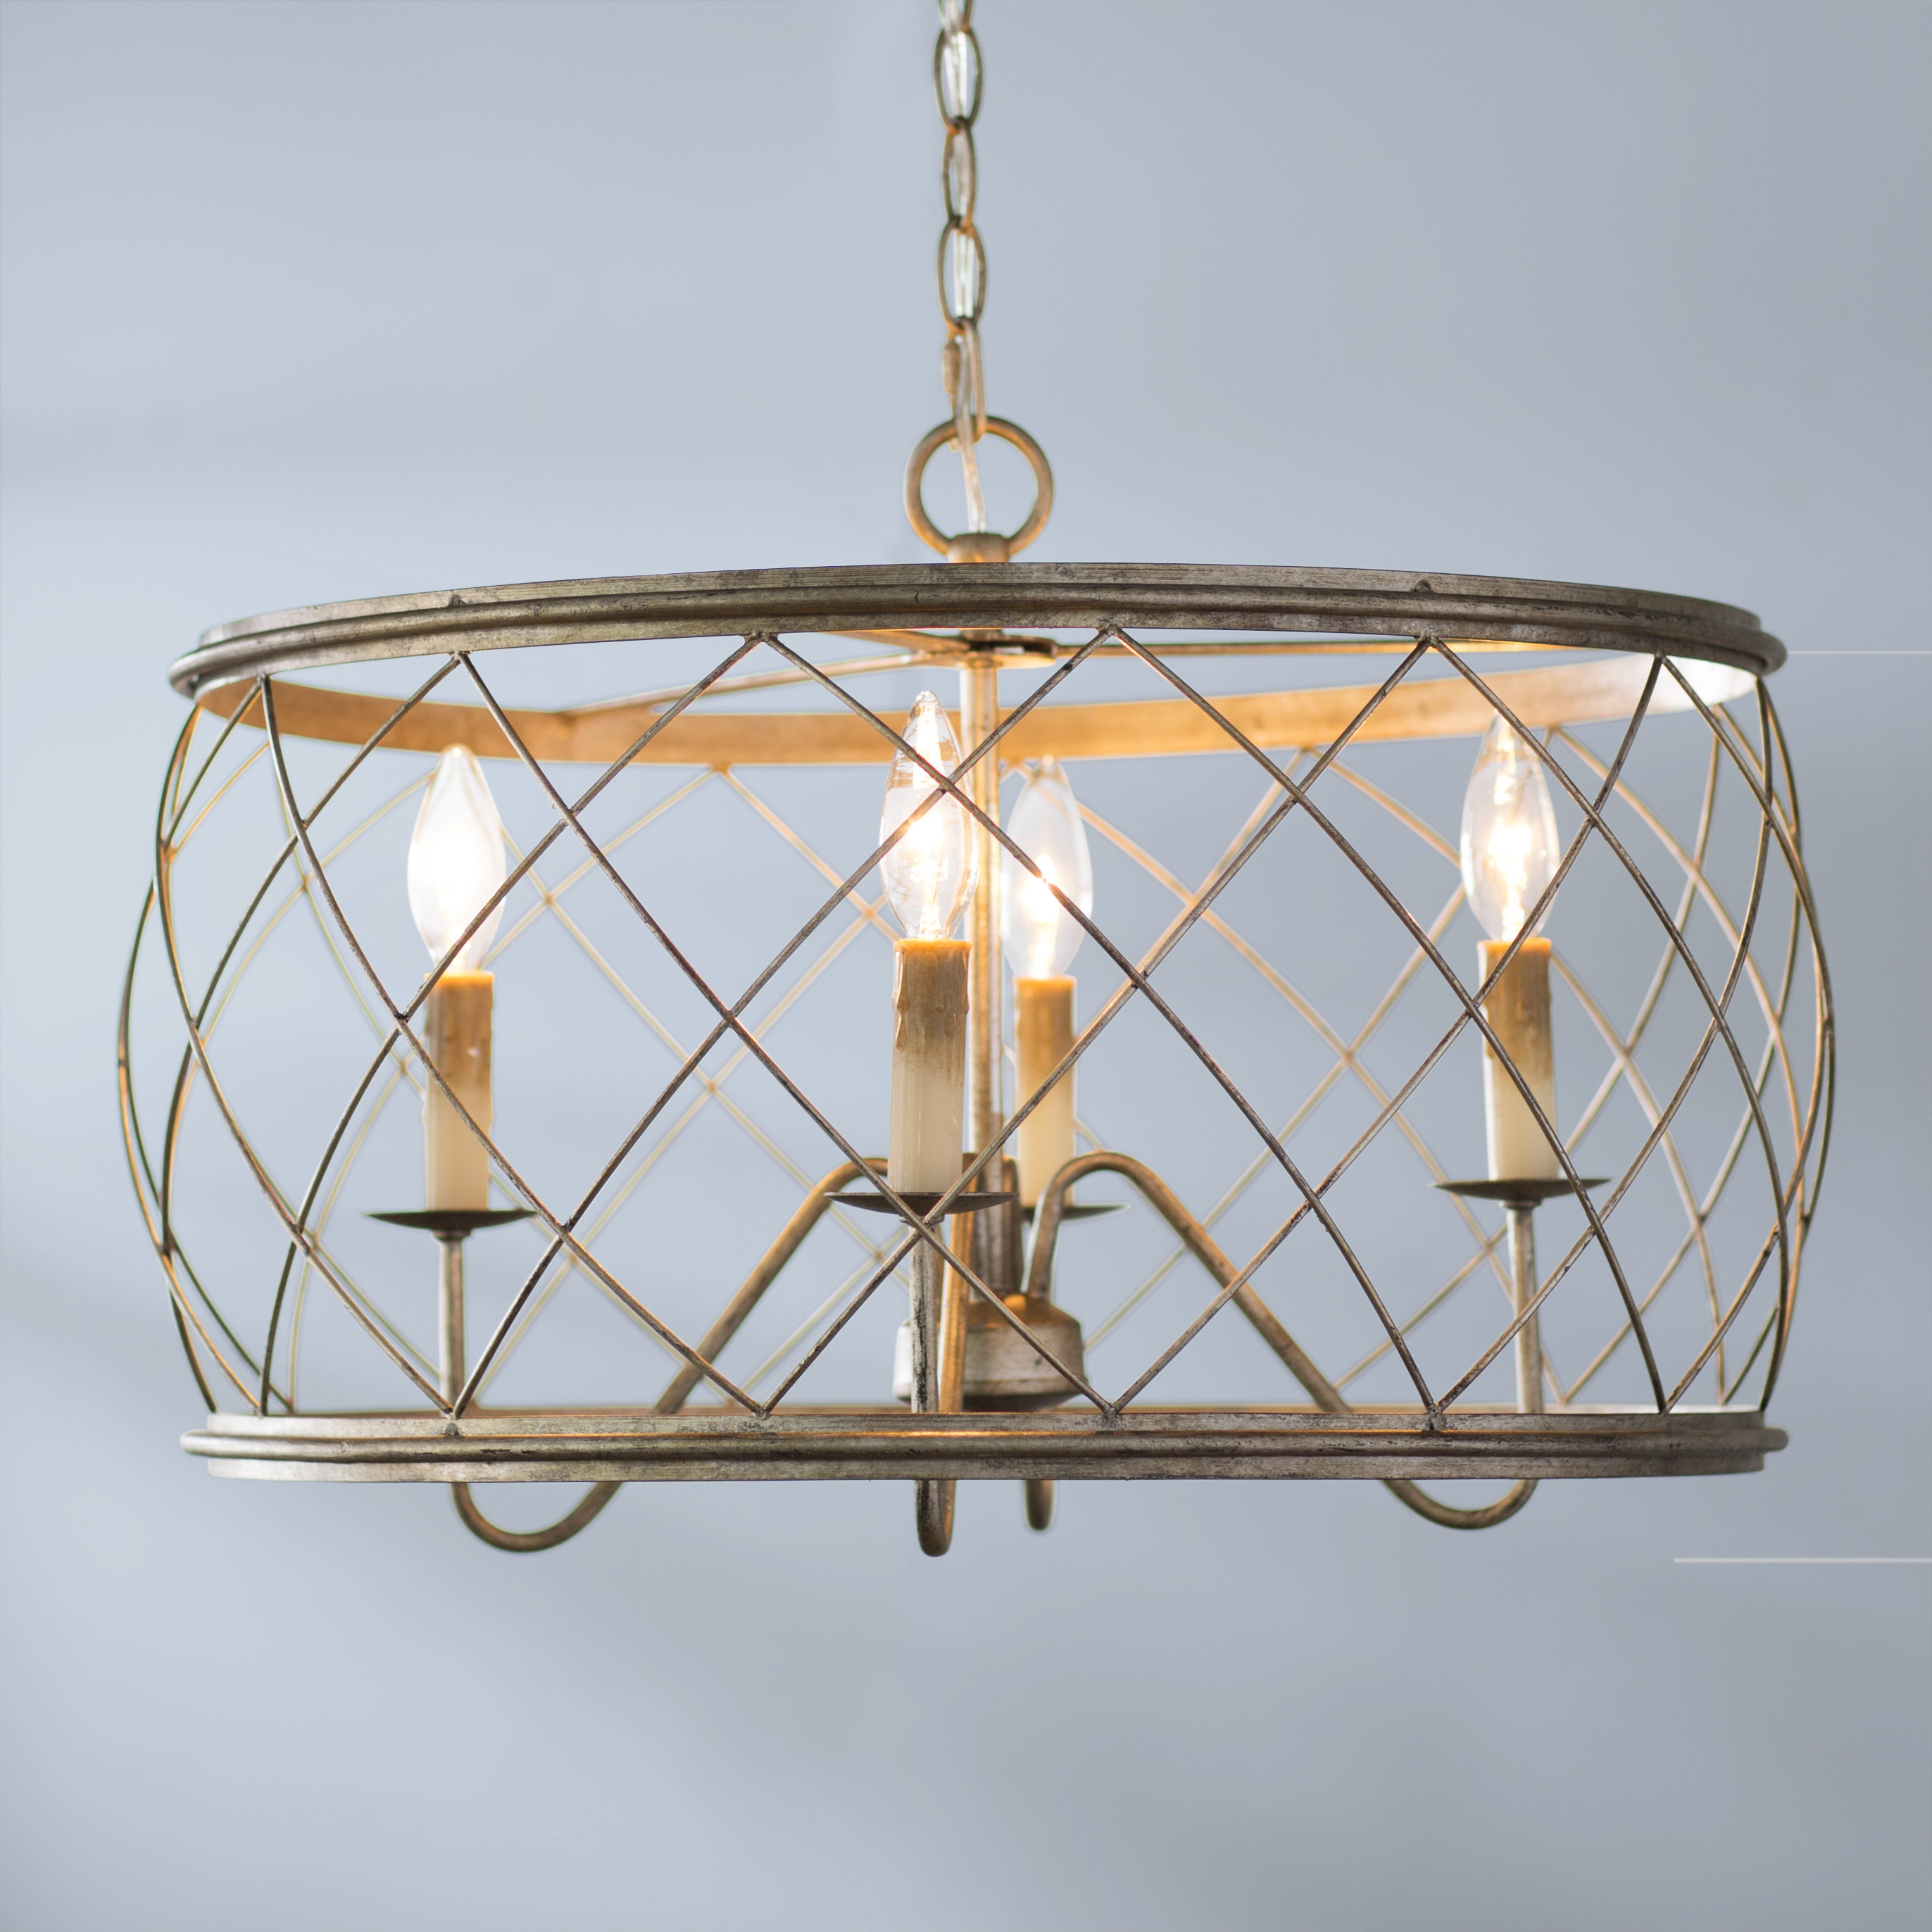 Laurel Foundry Modern Farmhouse Ryne 4 Light Drum Pendant In Current Armande 4 Light Lantern Drum Pendants (View 10 of 20)